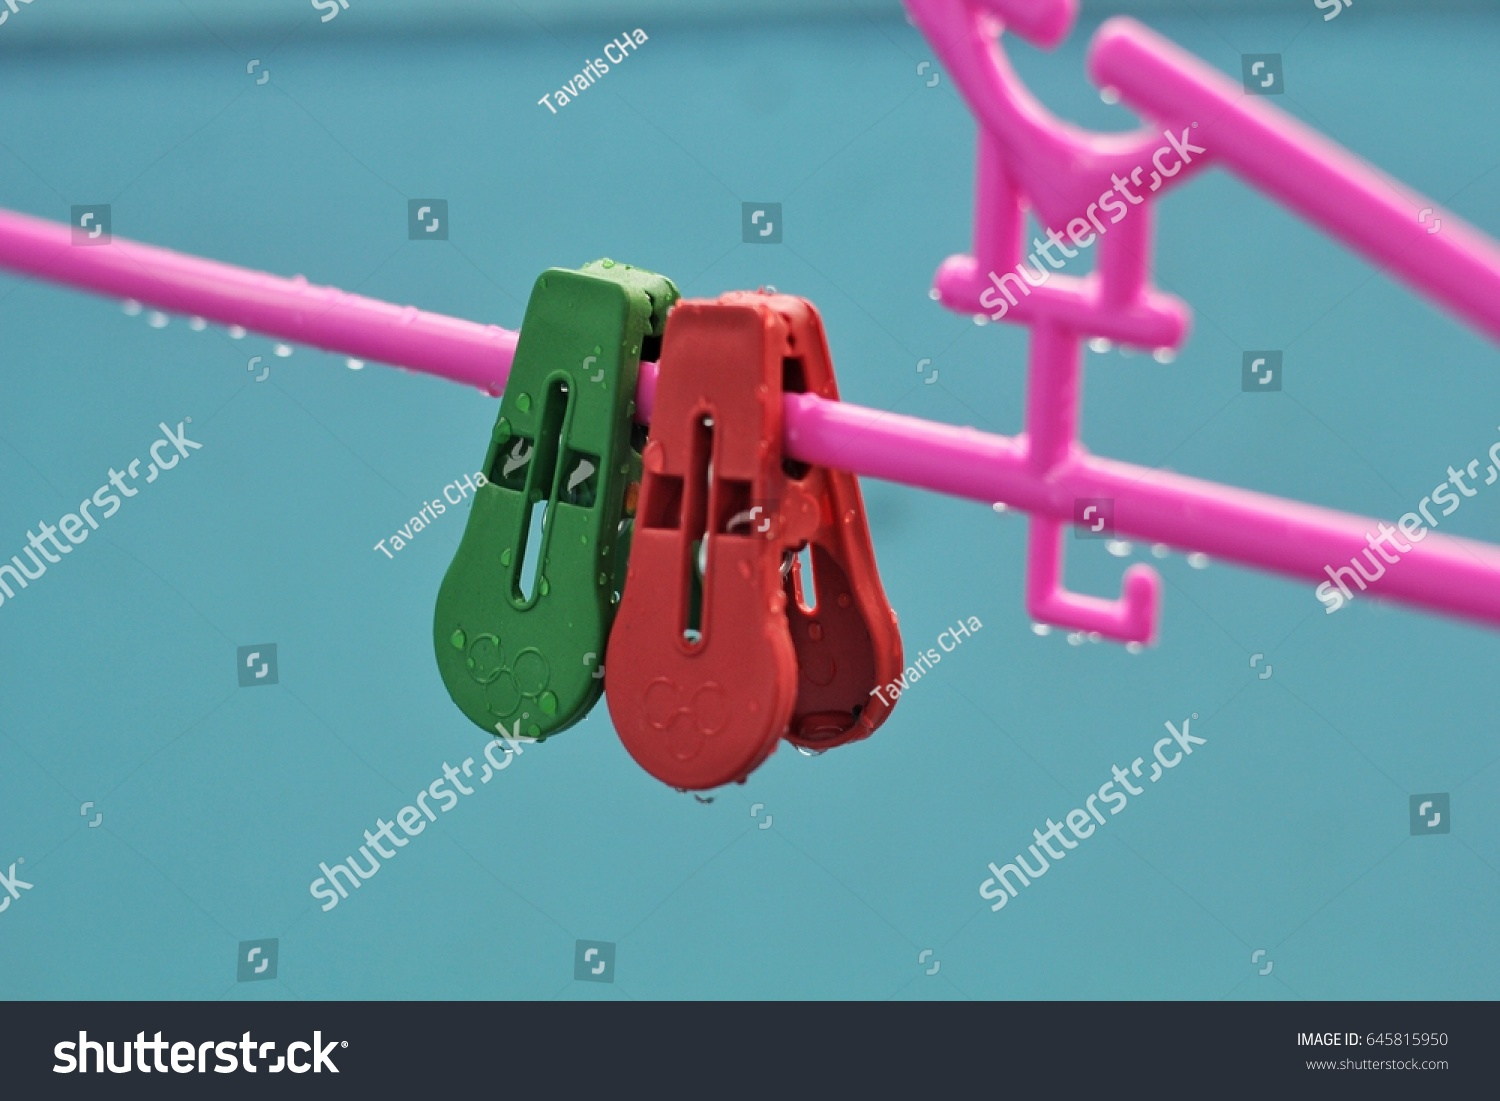 Two Little Clothes Pins on a Clothes Hanger